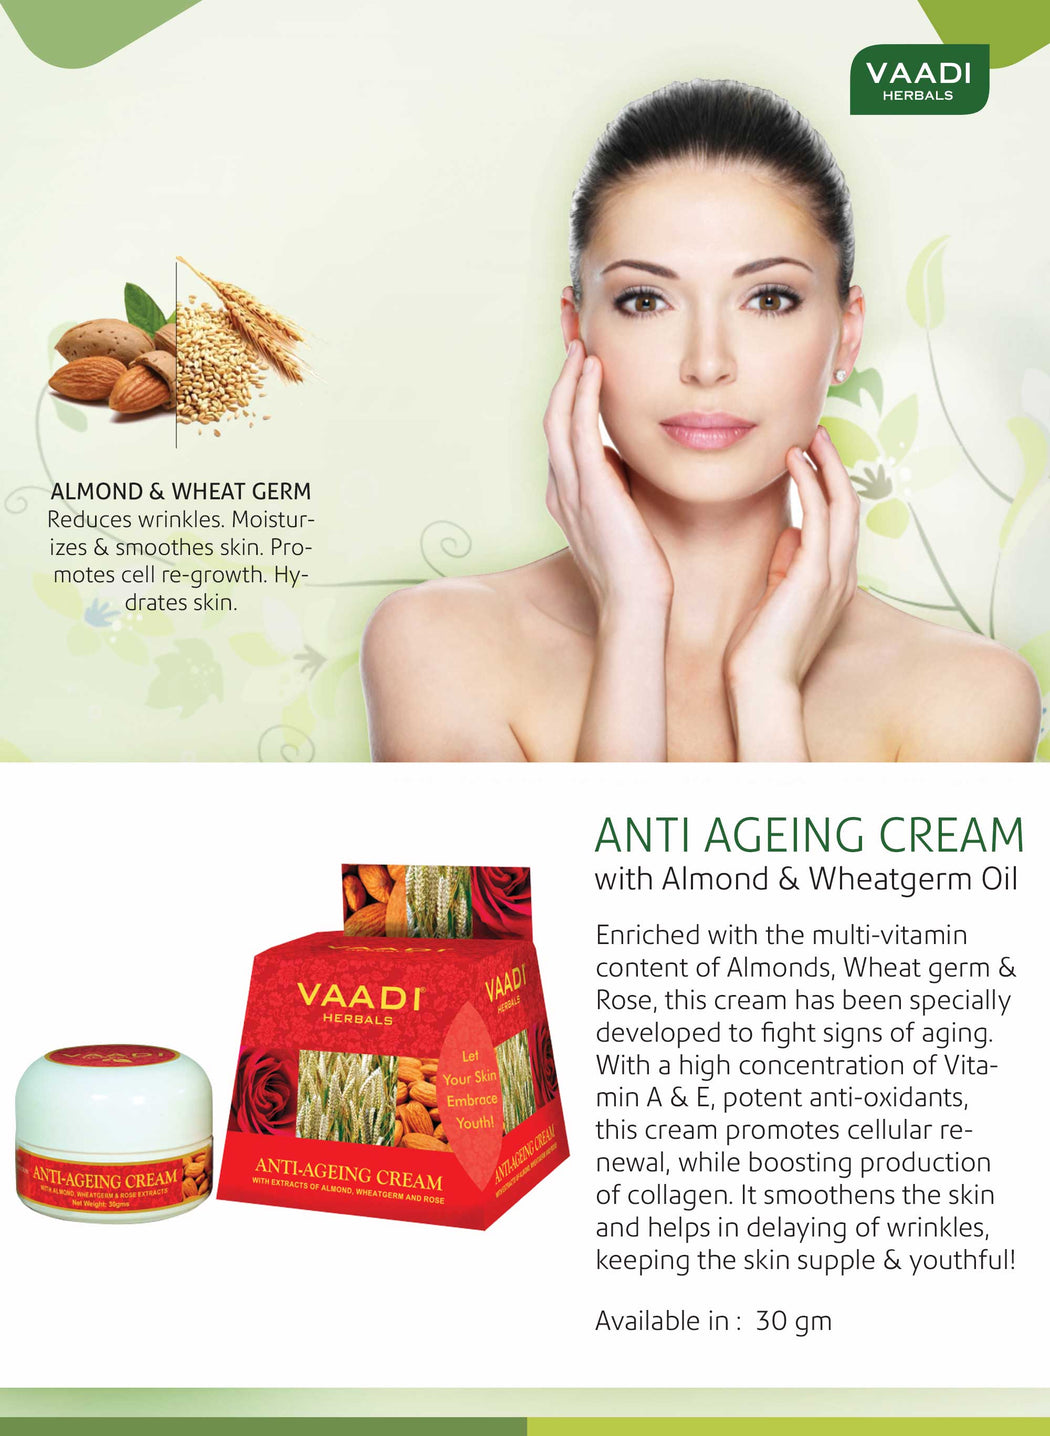 Pack of 3 Anti-Ageing Cream - Almond, Wheatgerm Oil & Rose (30 gms x 3)